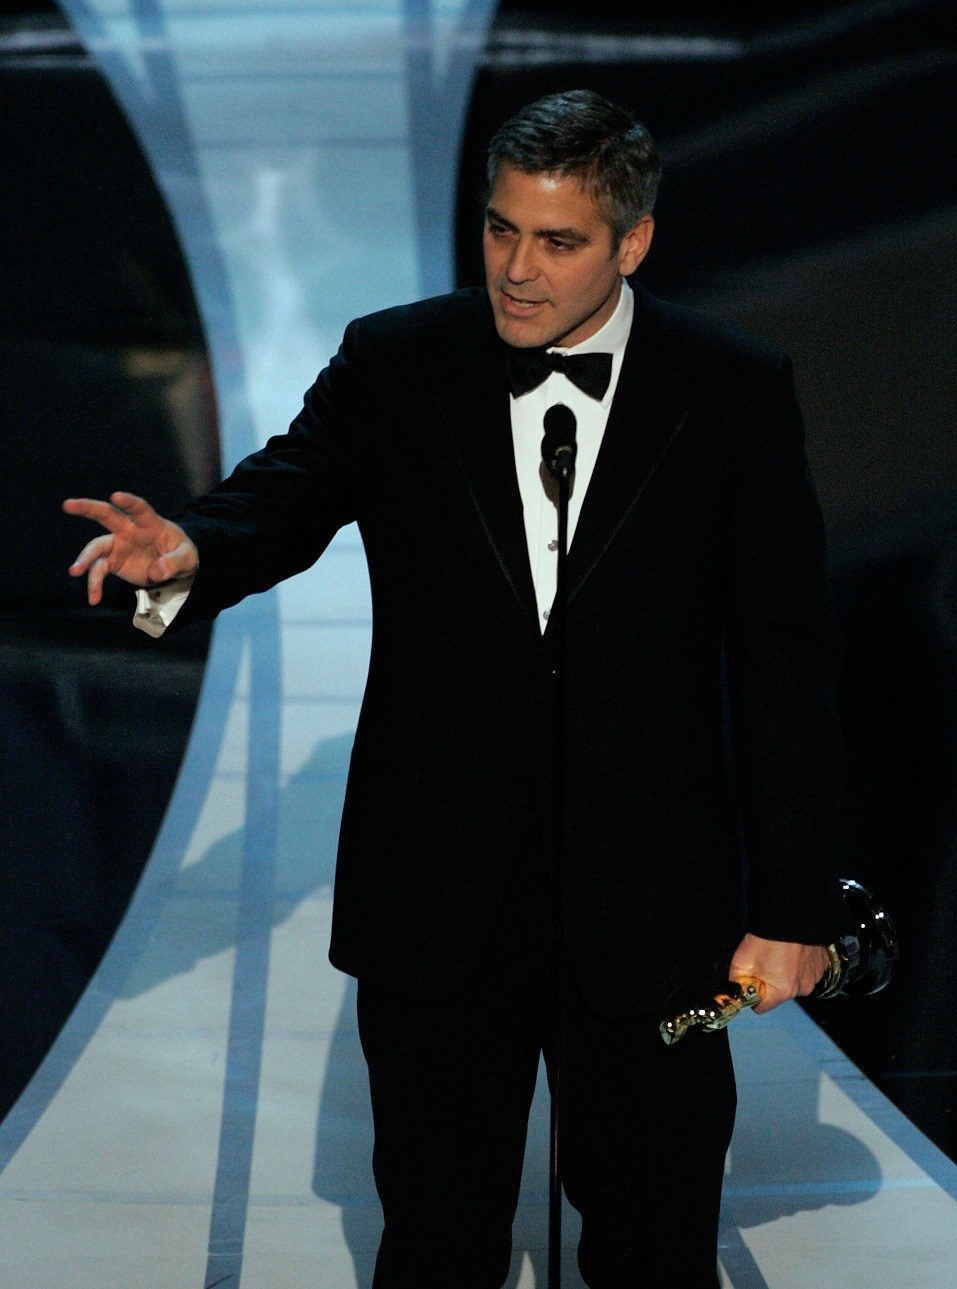 Actor George Clooney accepts the Best Supporting Actor award on stage during the 78th Annual Academy Awards